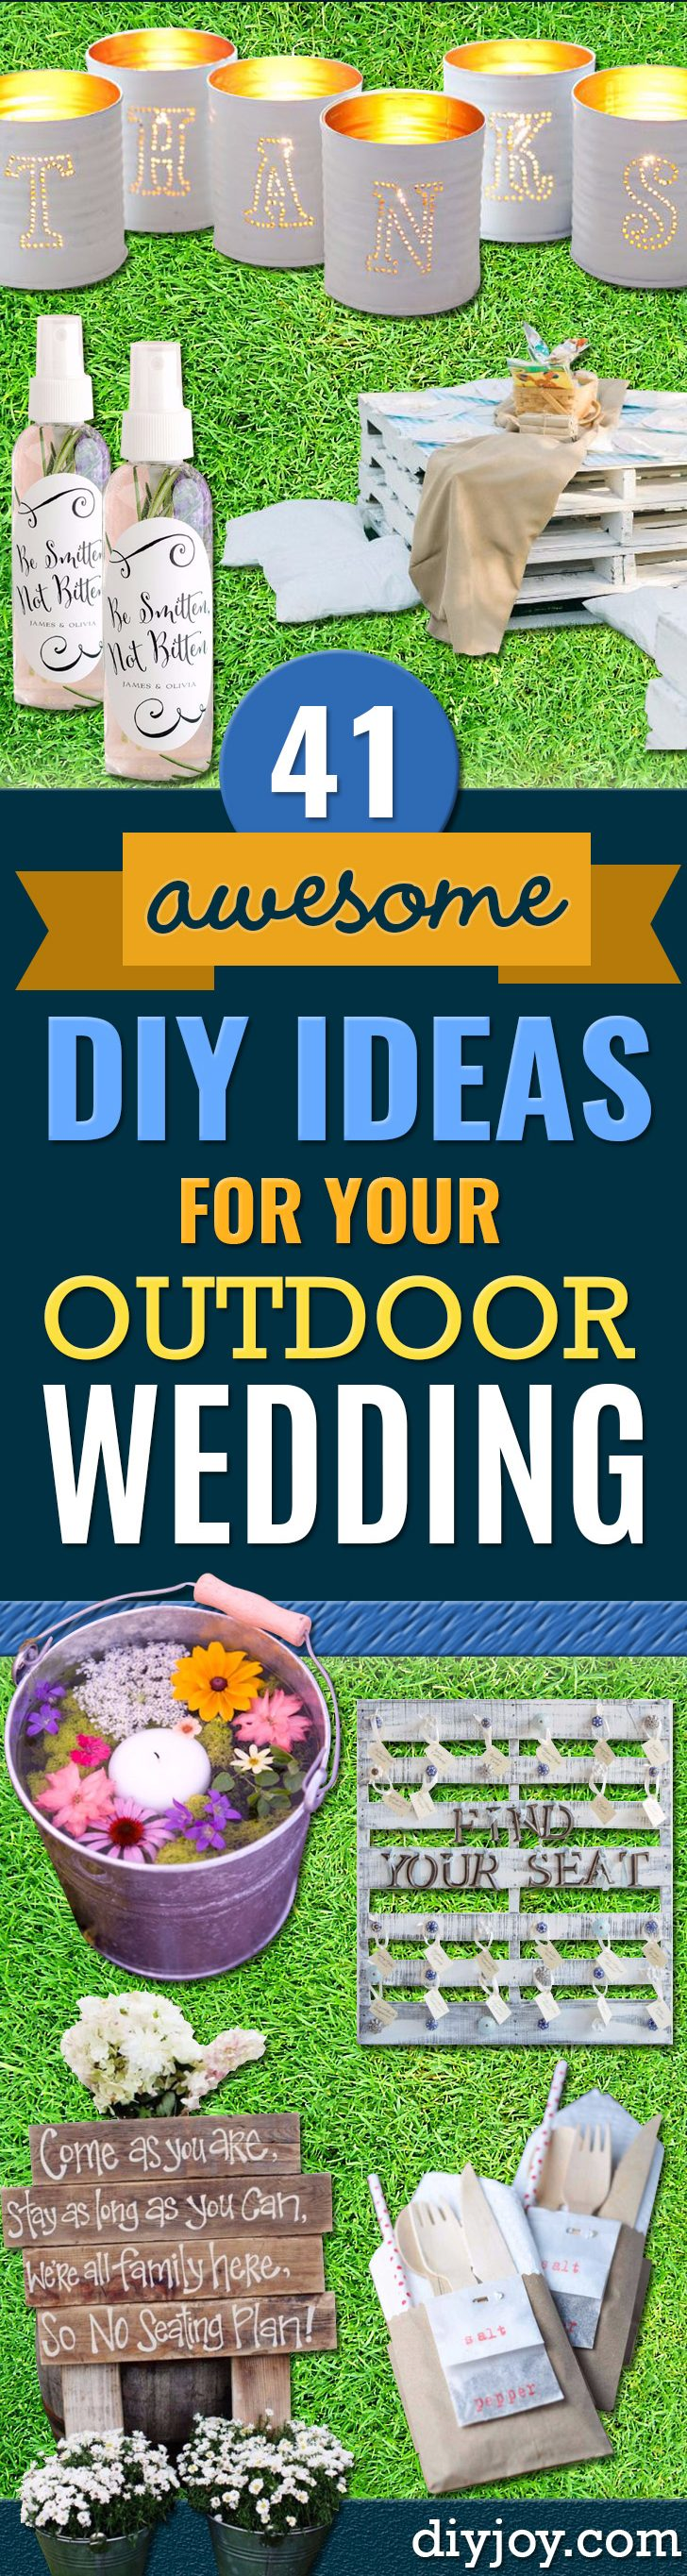 41 DIY Ideas for An Outdoor Wedding